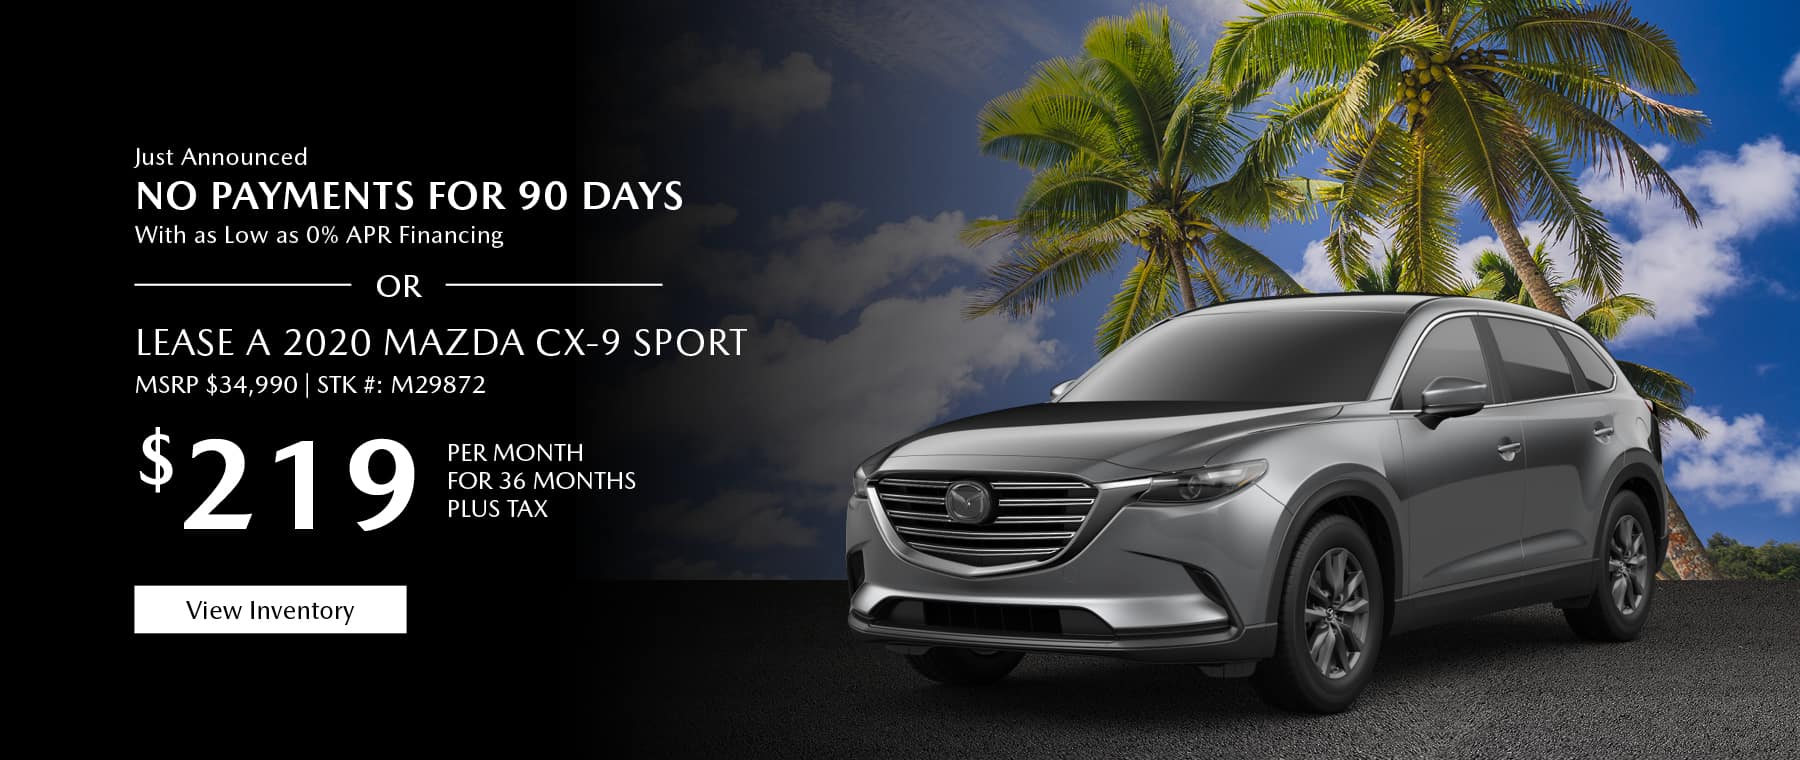 Just Announced, No payments for 90 days with as low as %0 APR financing, or lease the 2020 Mazda CX-9 for $219 per month, plus tax. View inventory.